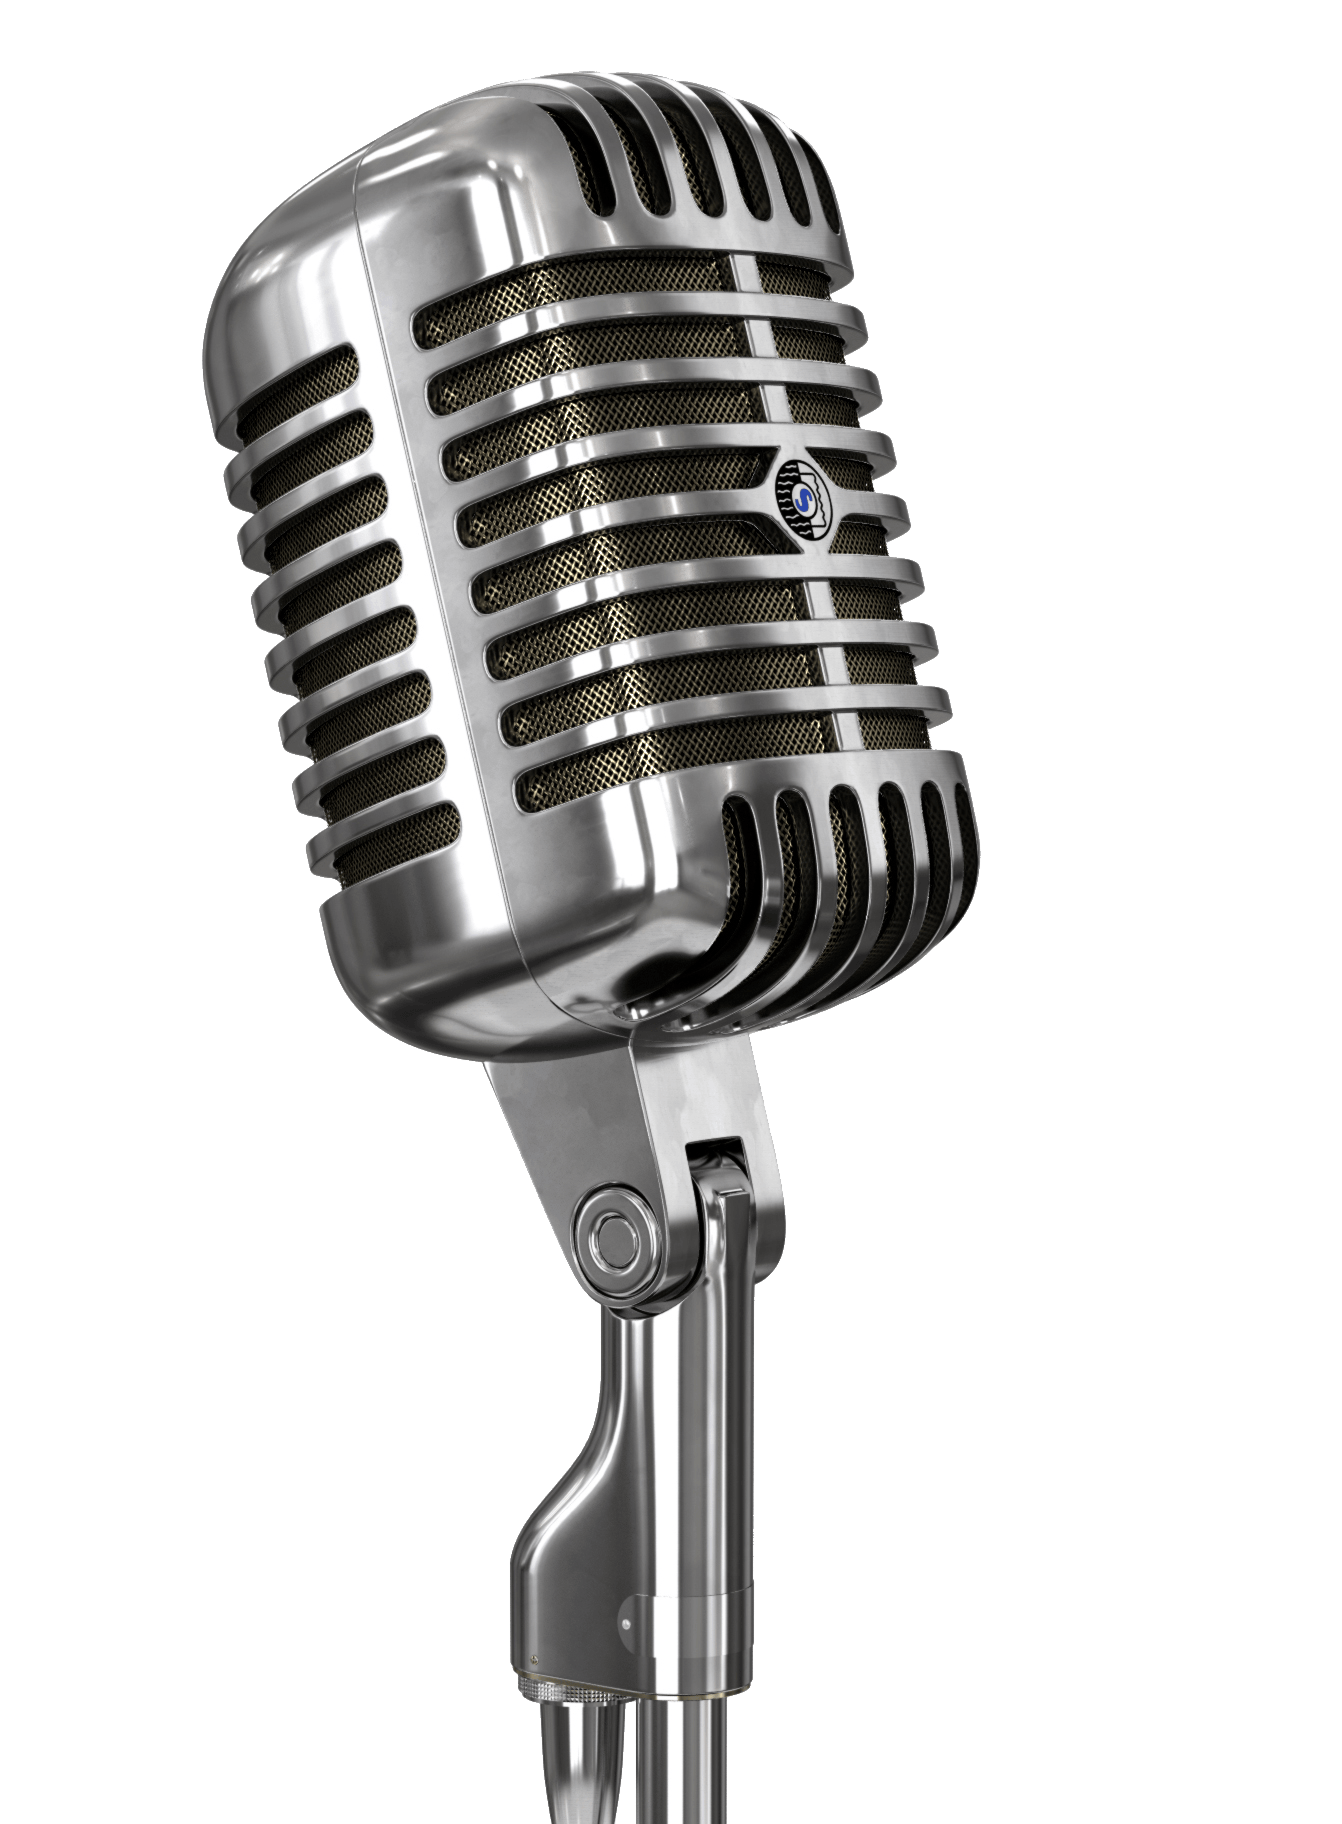 Microphone clipart on air. Hd png transparent images